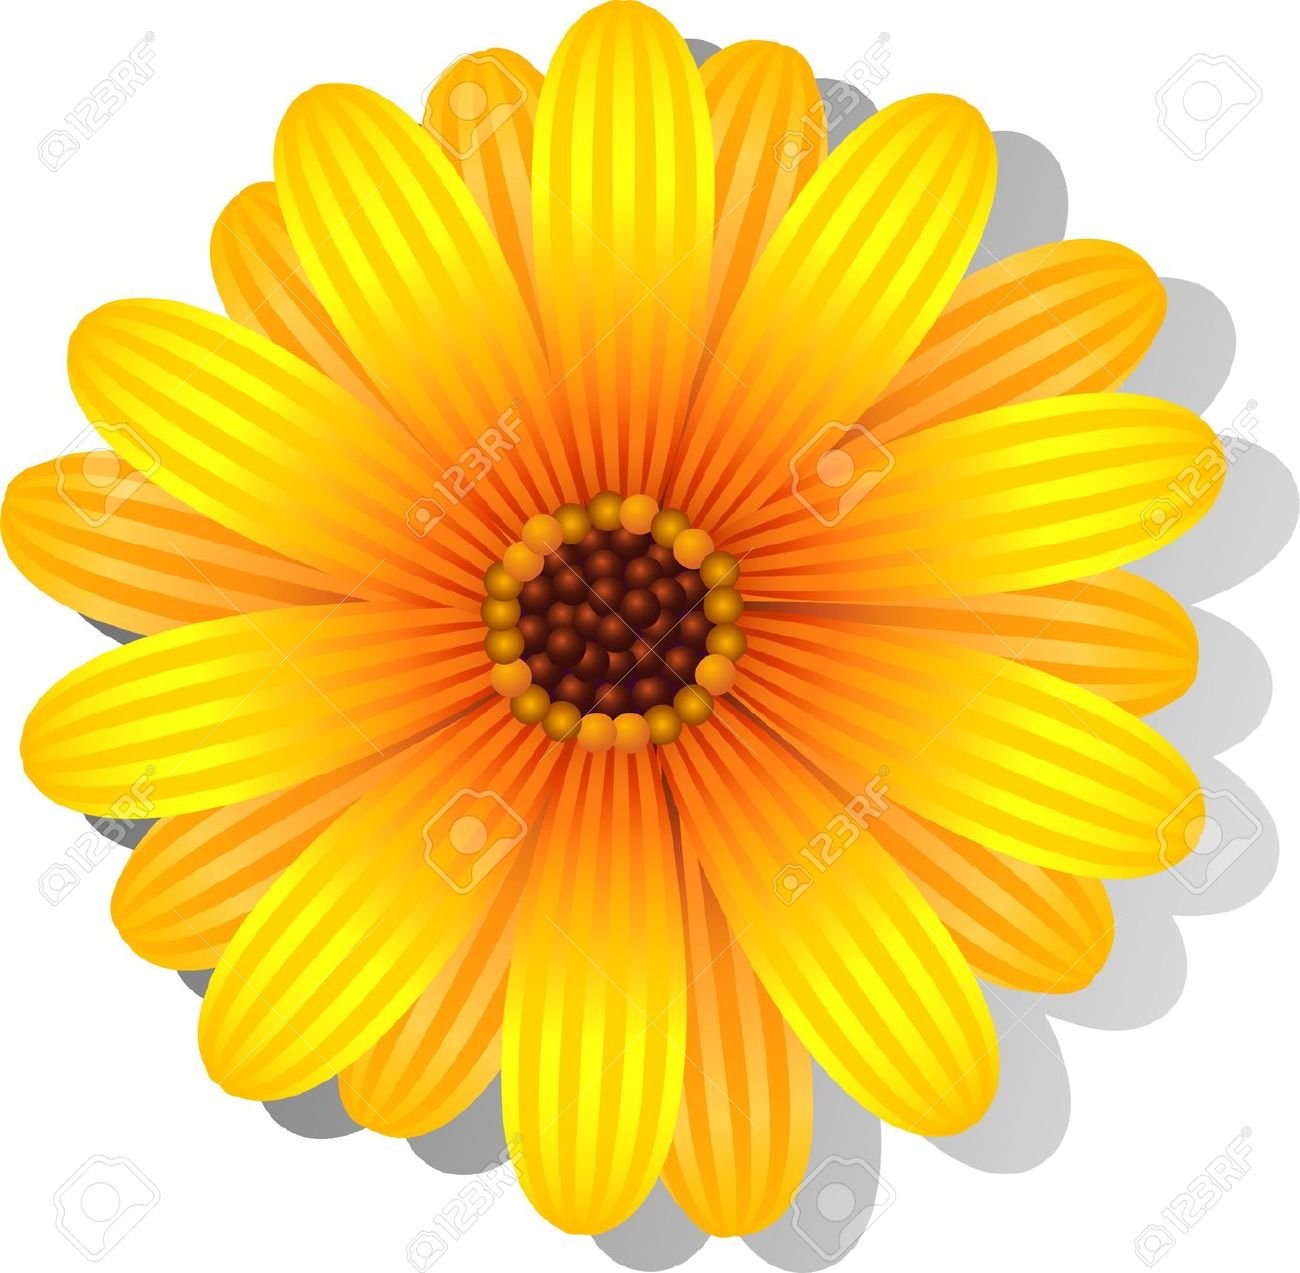 Beautiful yellow flowers clipart.